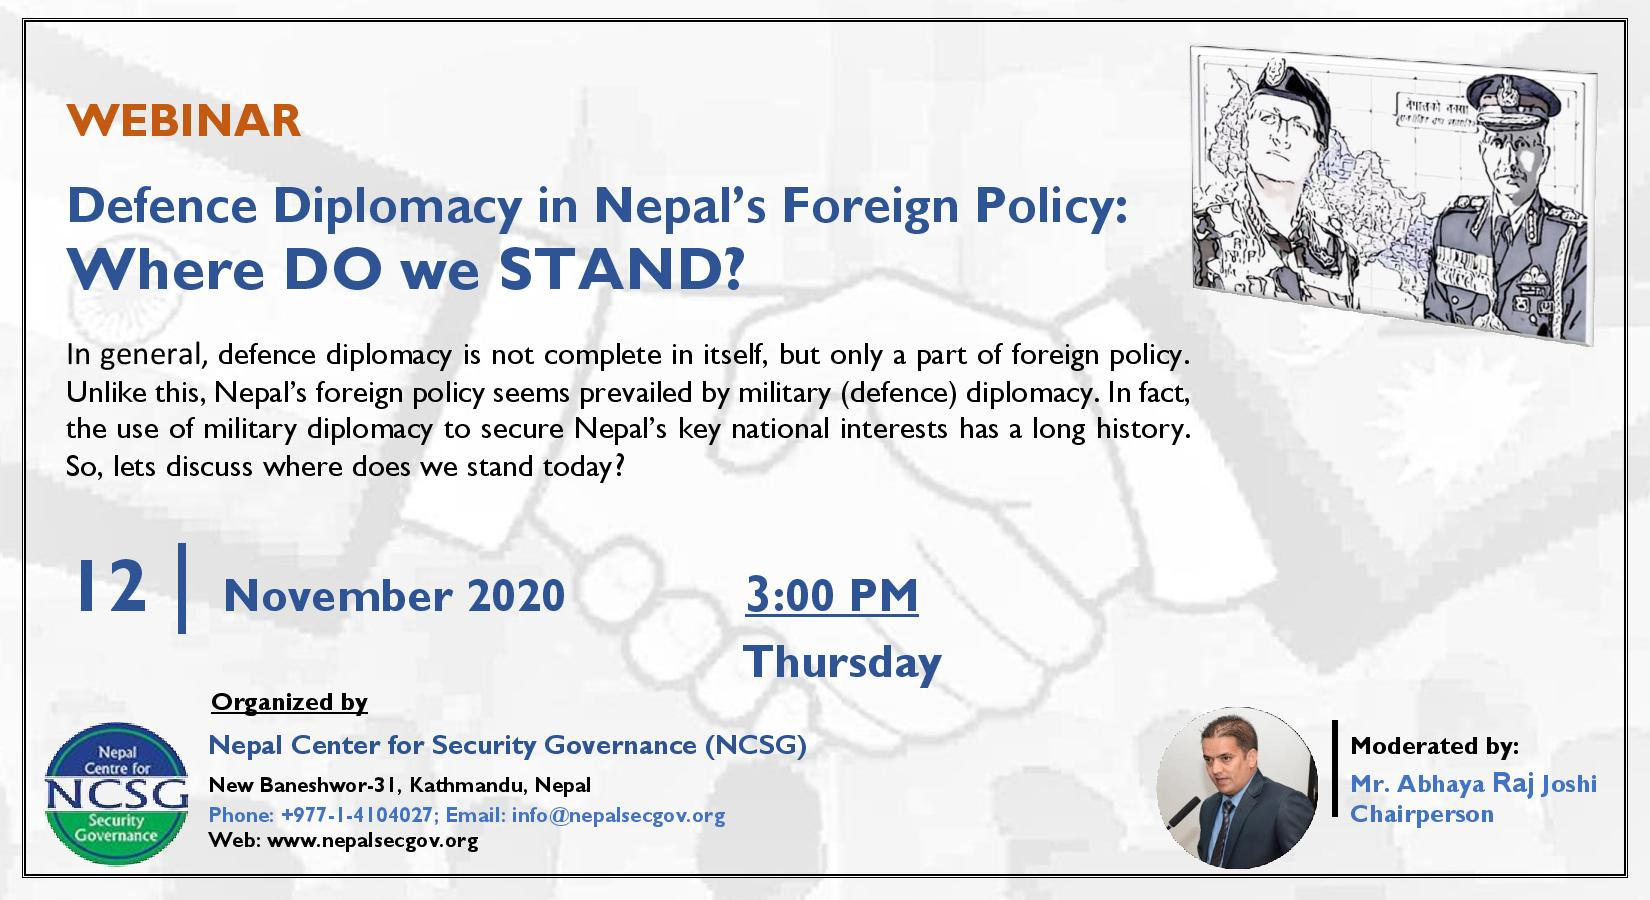 """WEBINAR on """"Defense Diplomacy in Nepal's Foreign Policy: Where DO we STAND?"""""""